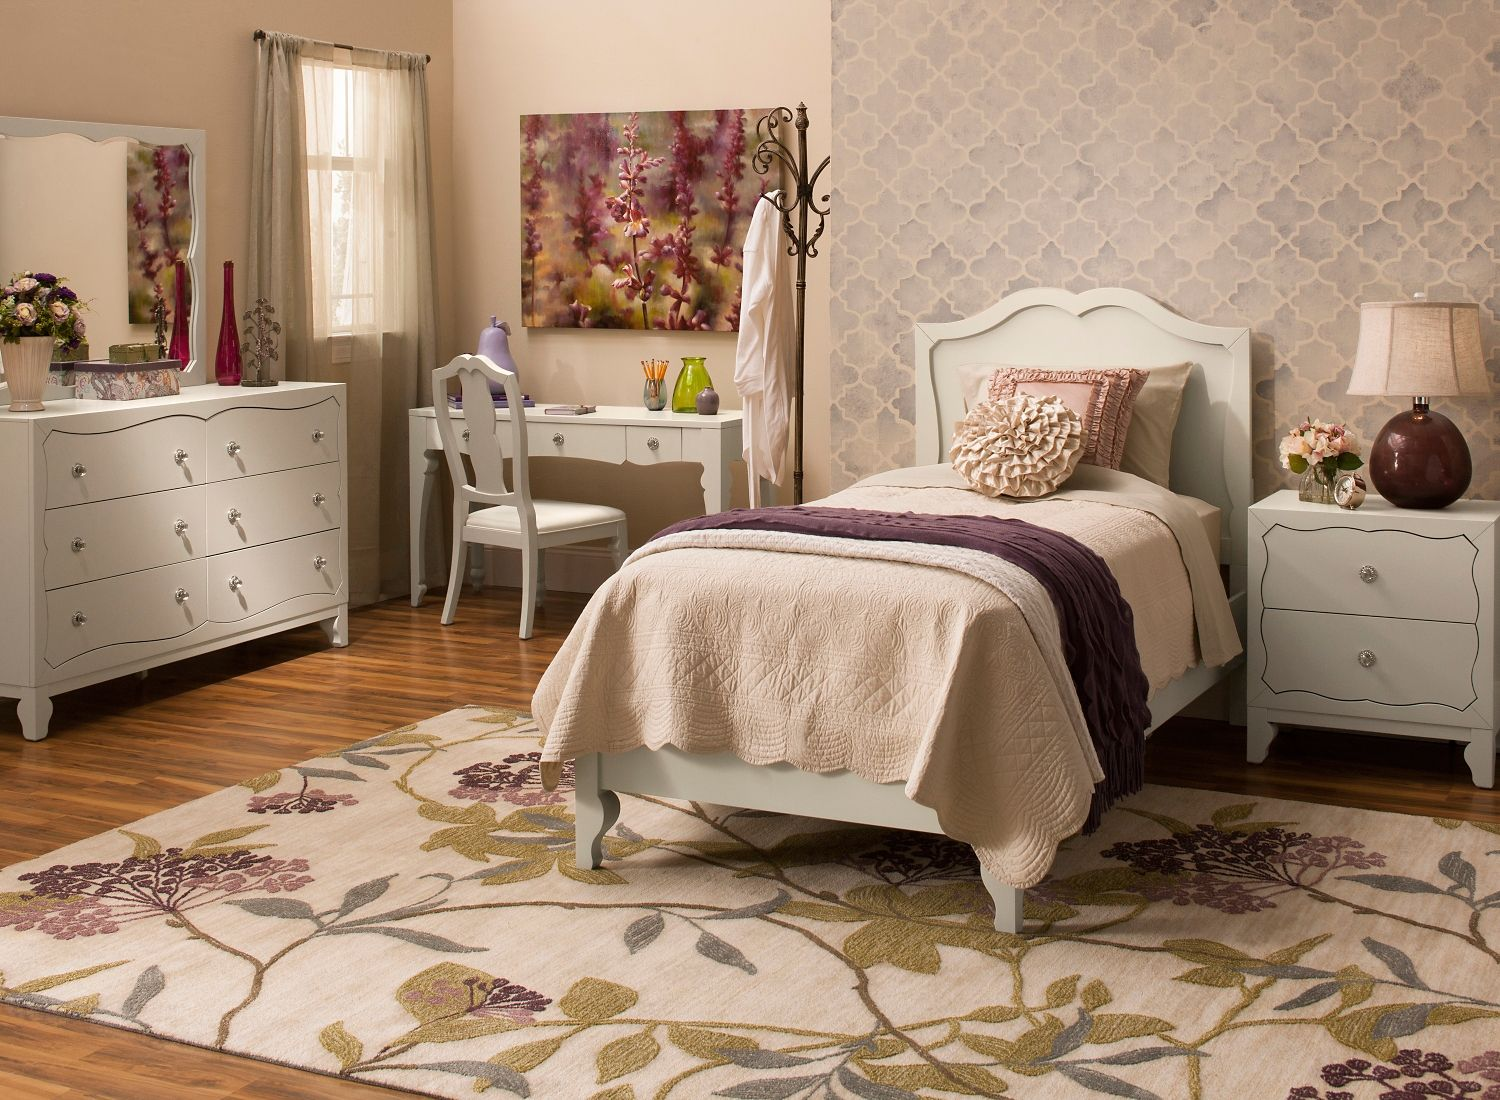 How classic! Choose neutral colored furniture to pair with